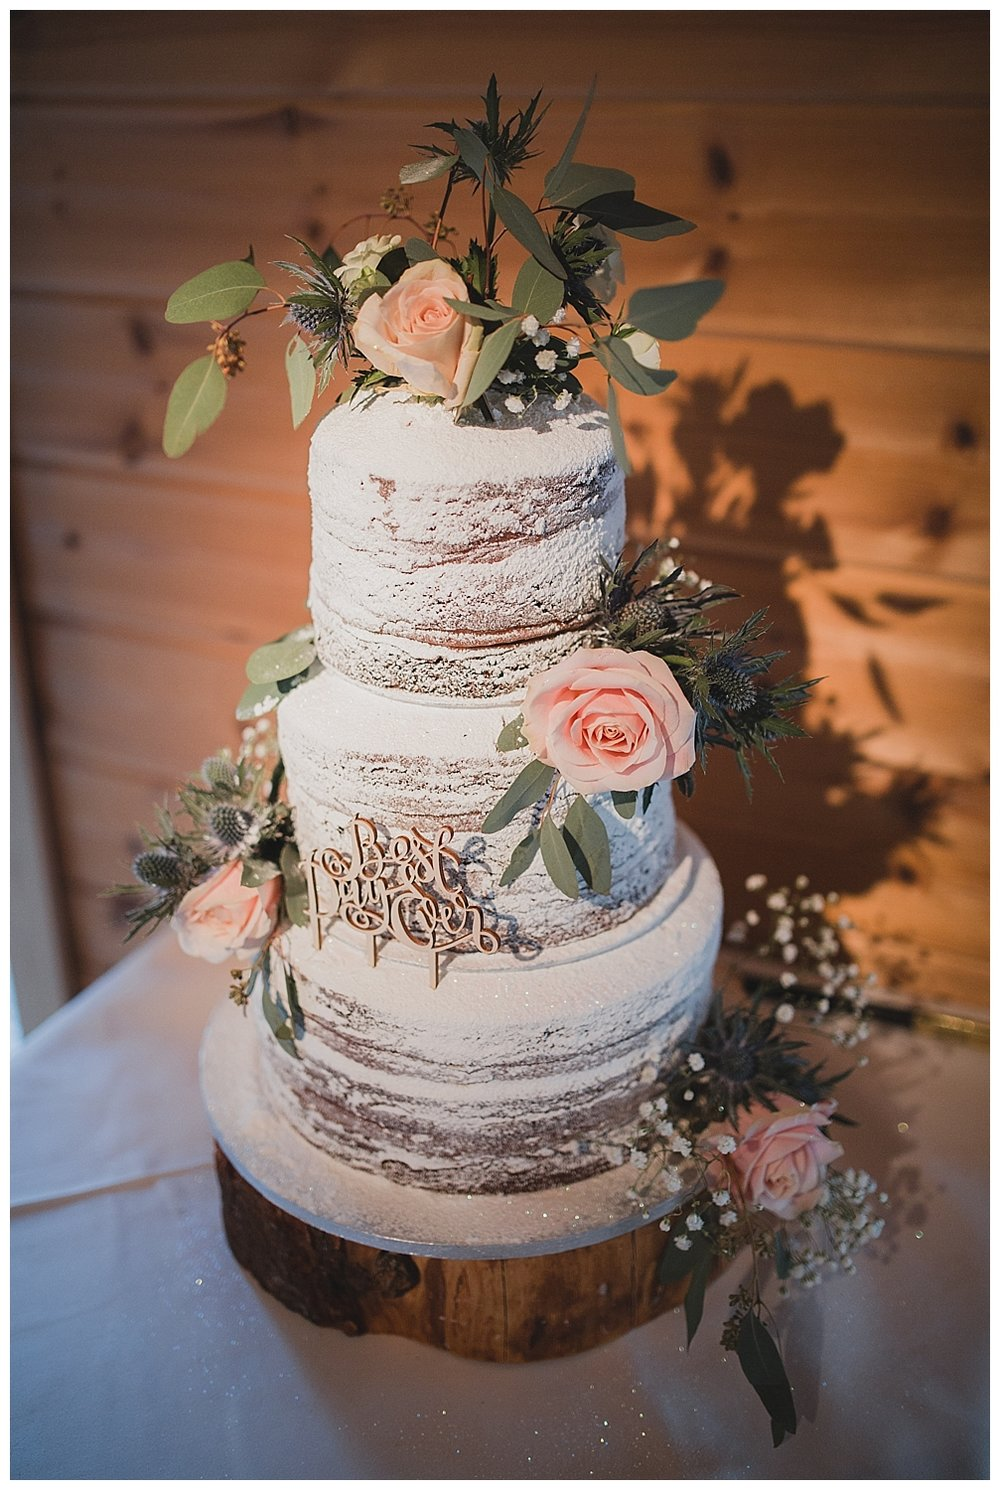 Wedding cake by Pink Pepper Catering